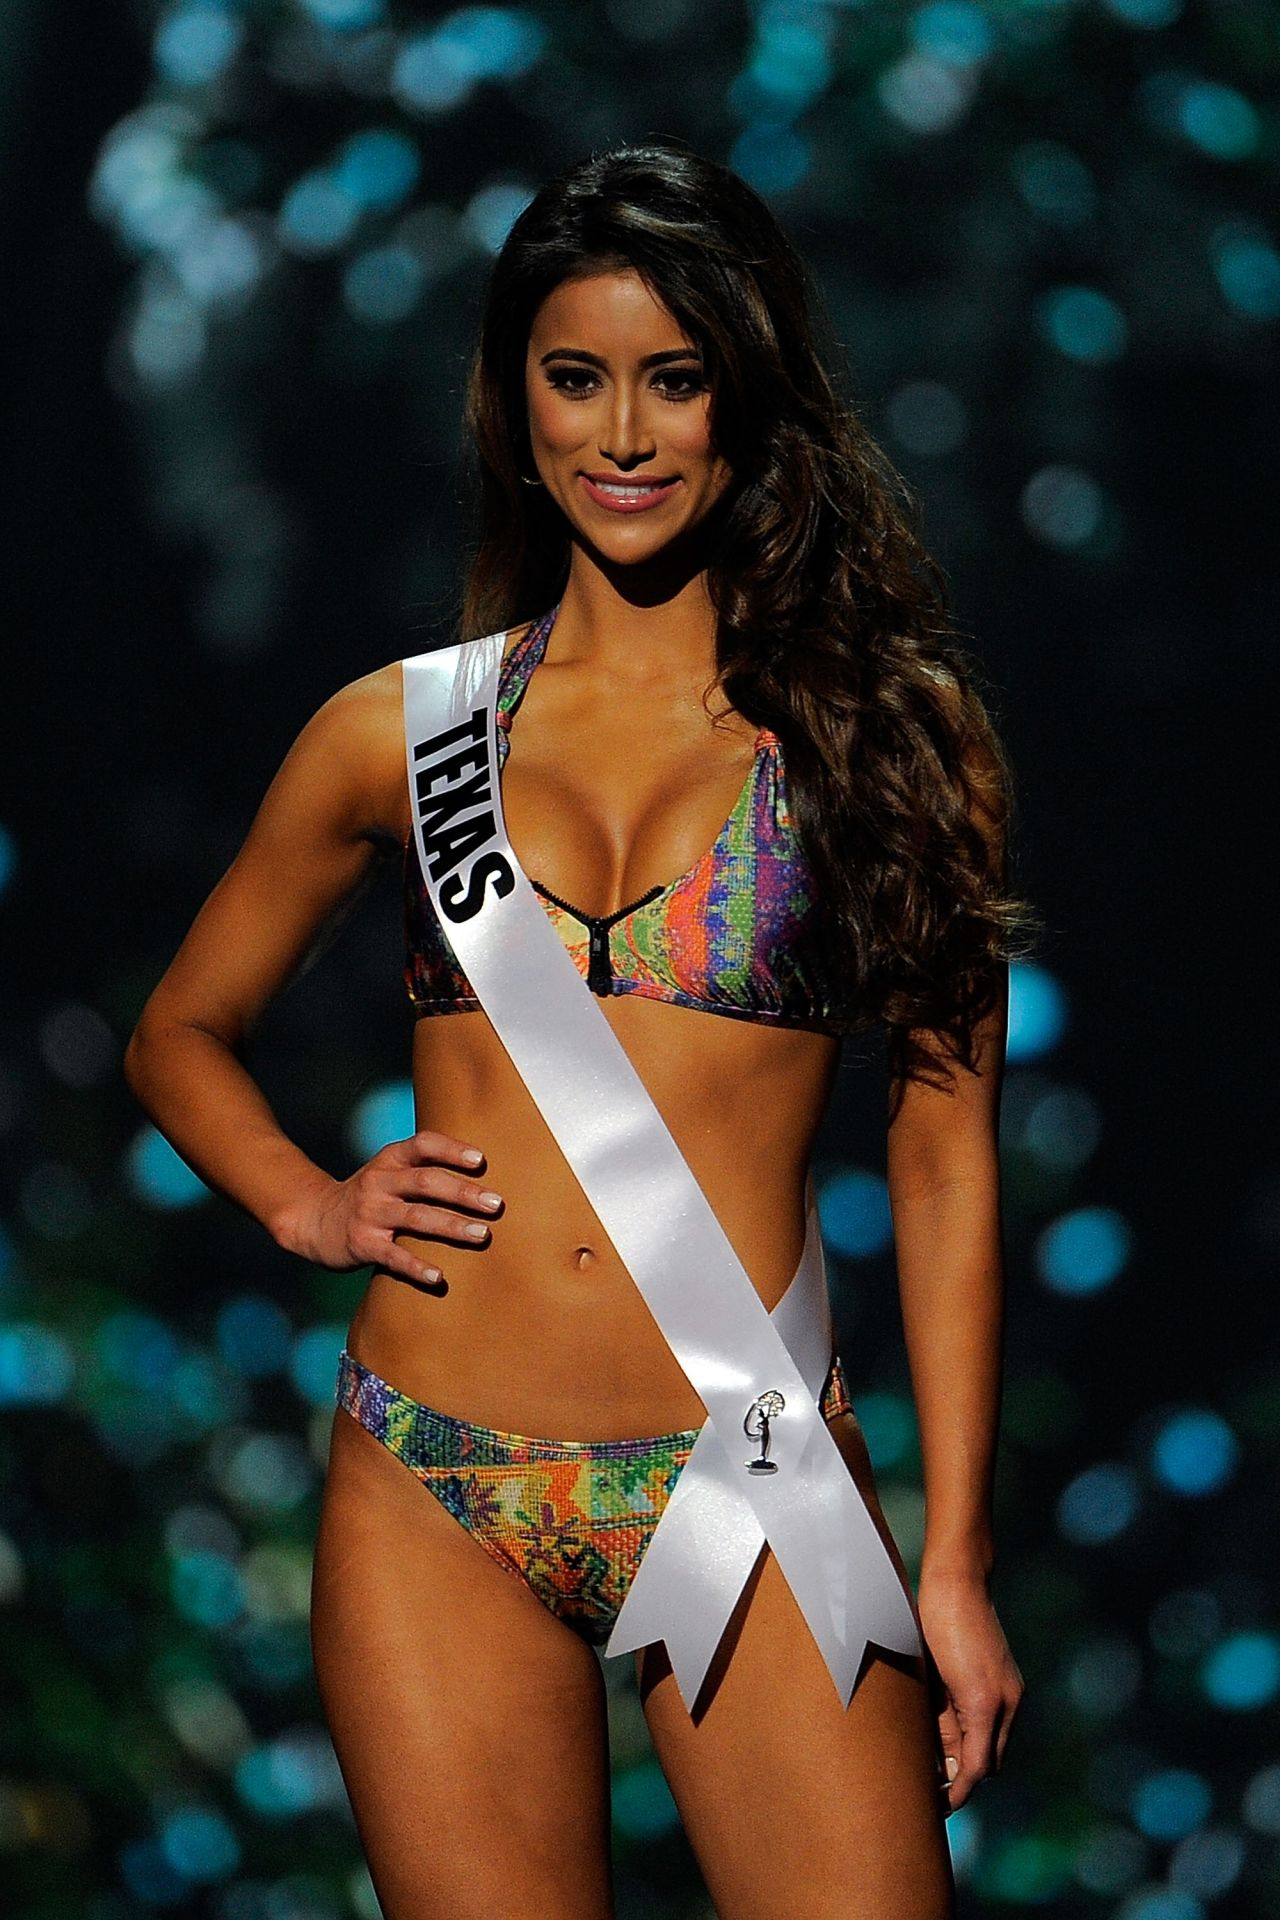 Lauren Guzman (Texas) - Miss USA Preliminary Competition - June 2014